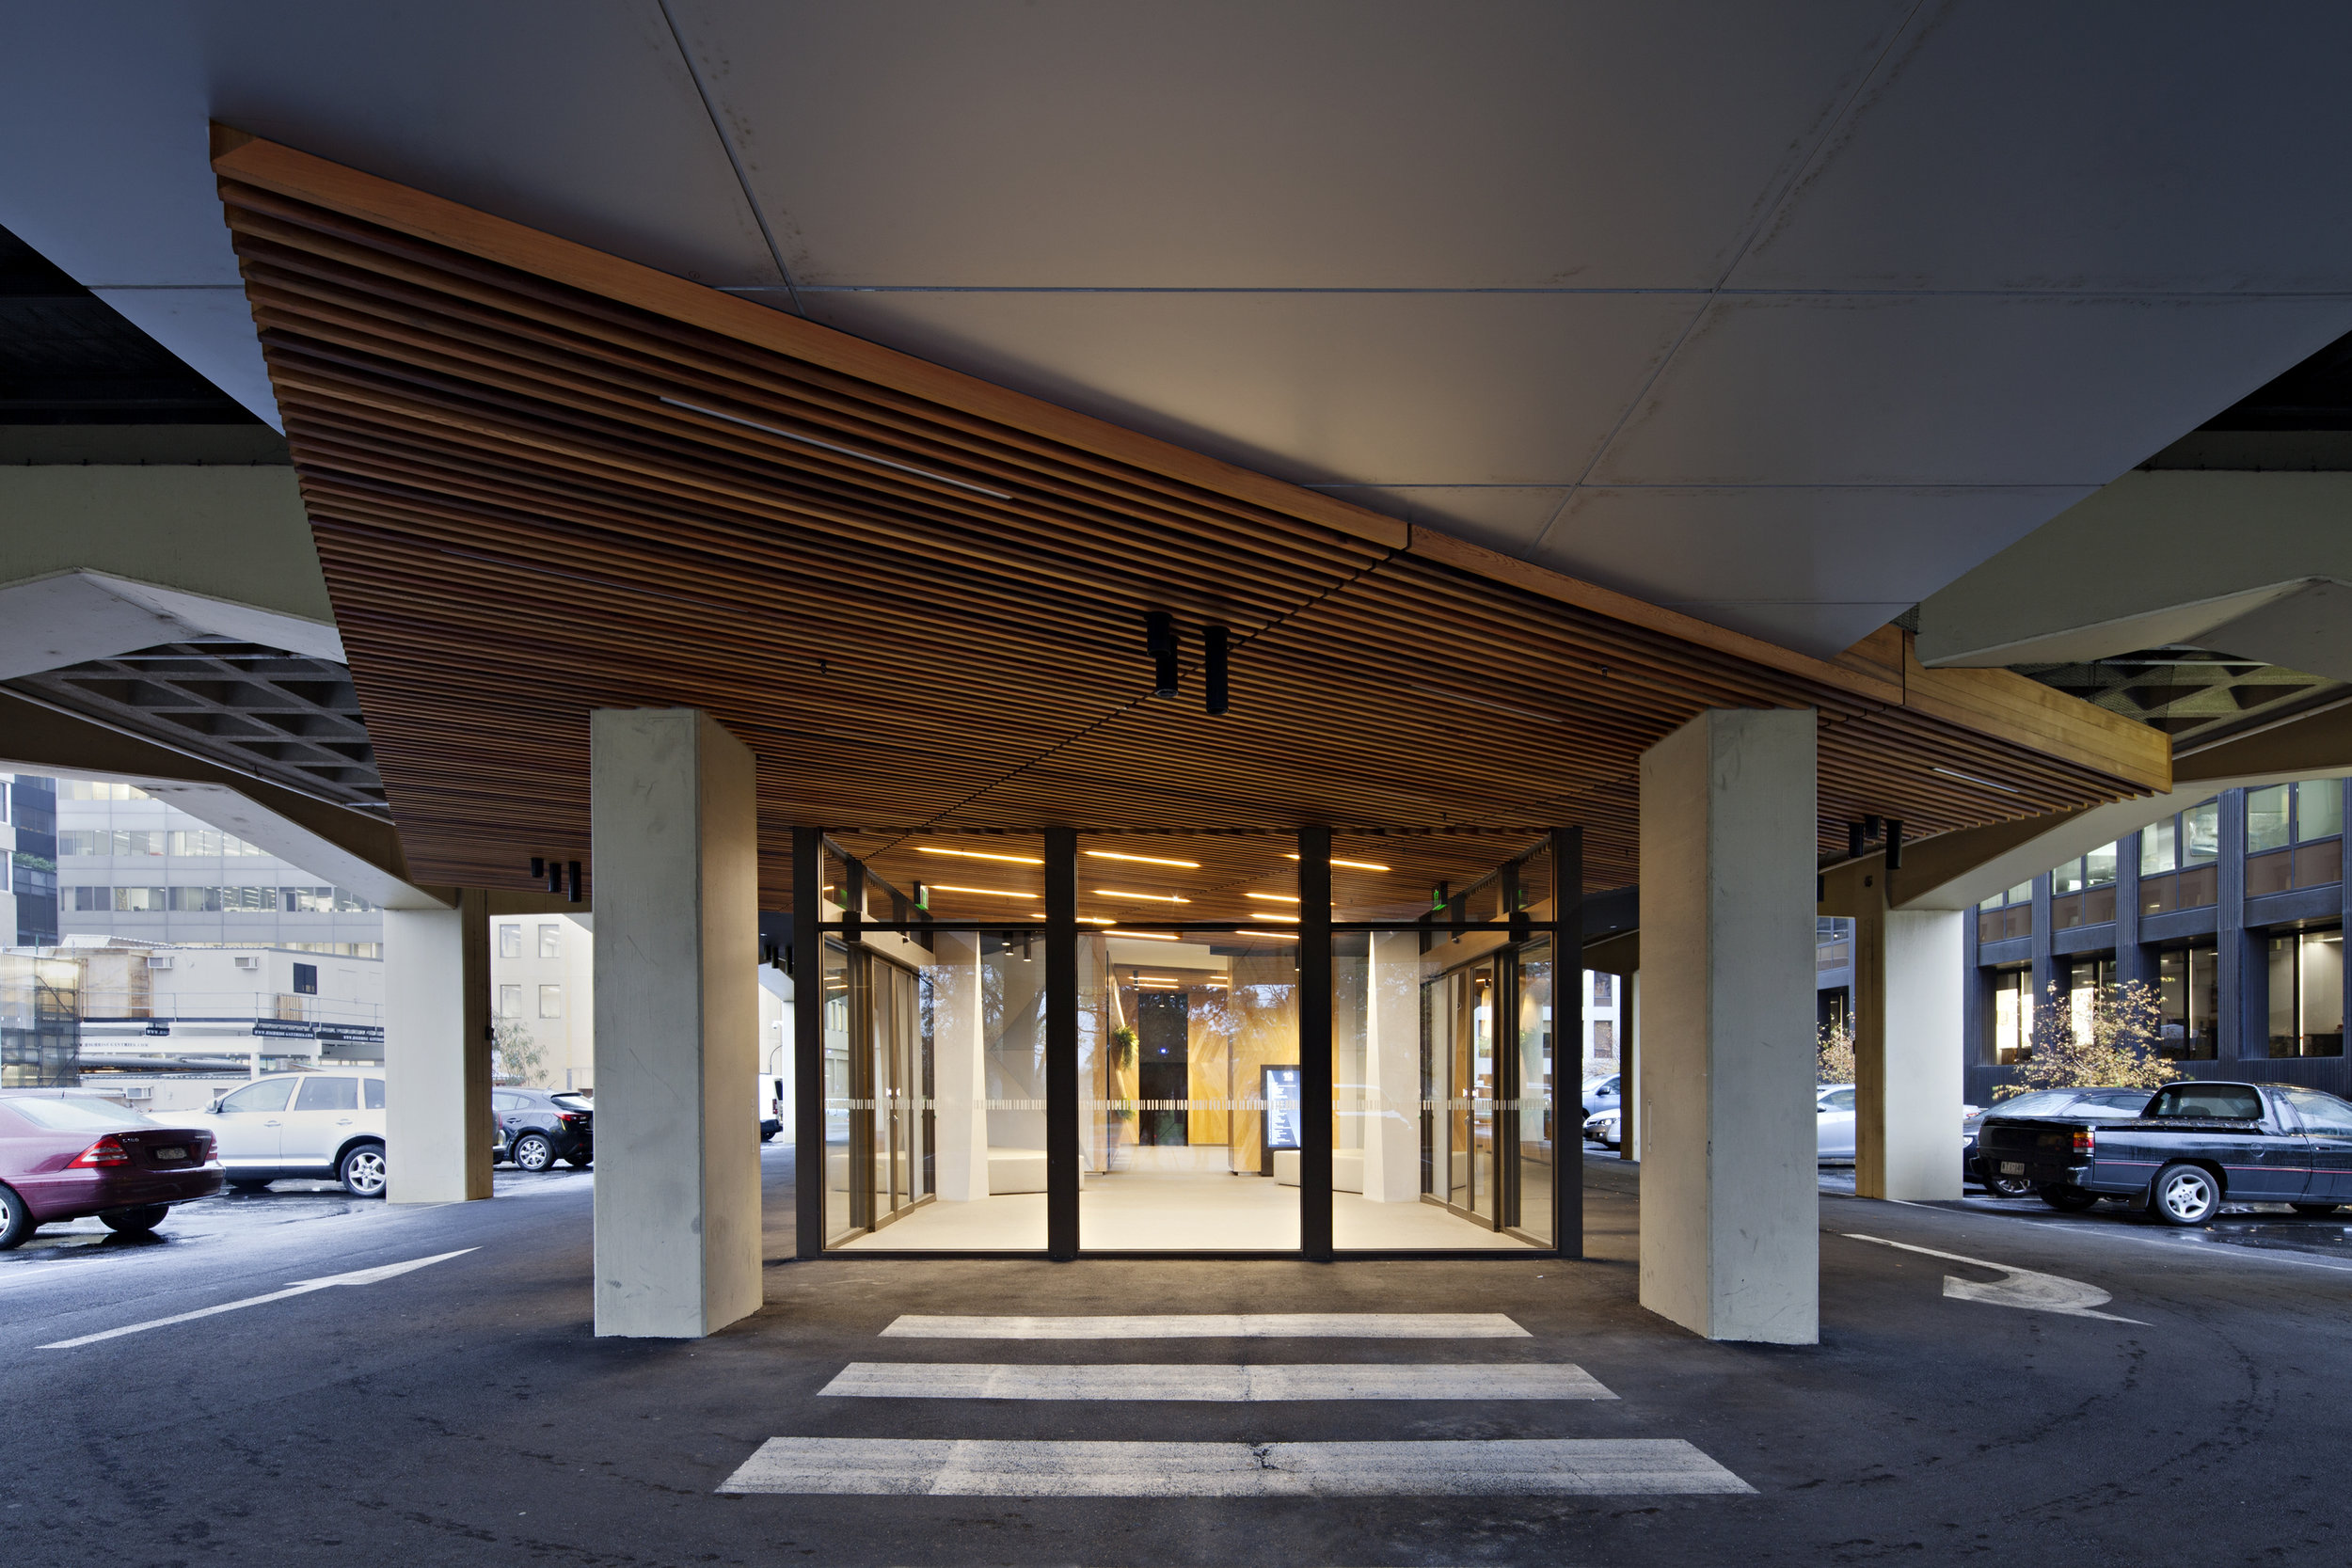 10 QUEENS RD LOBBY ENTRANCE